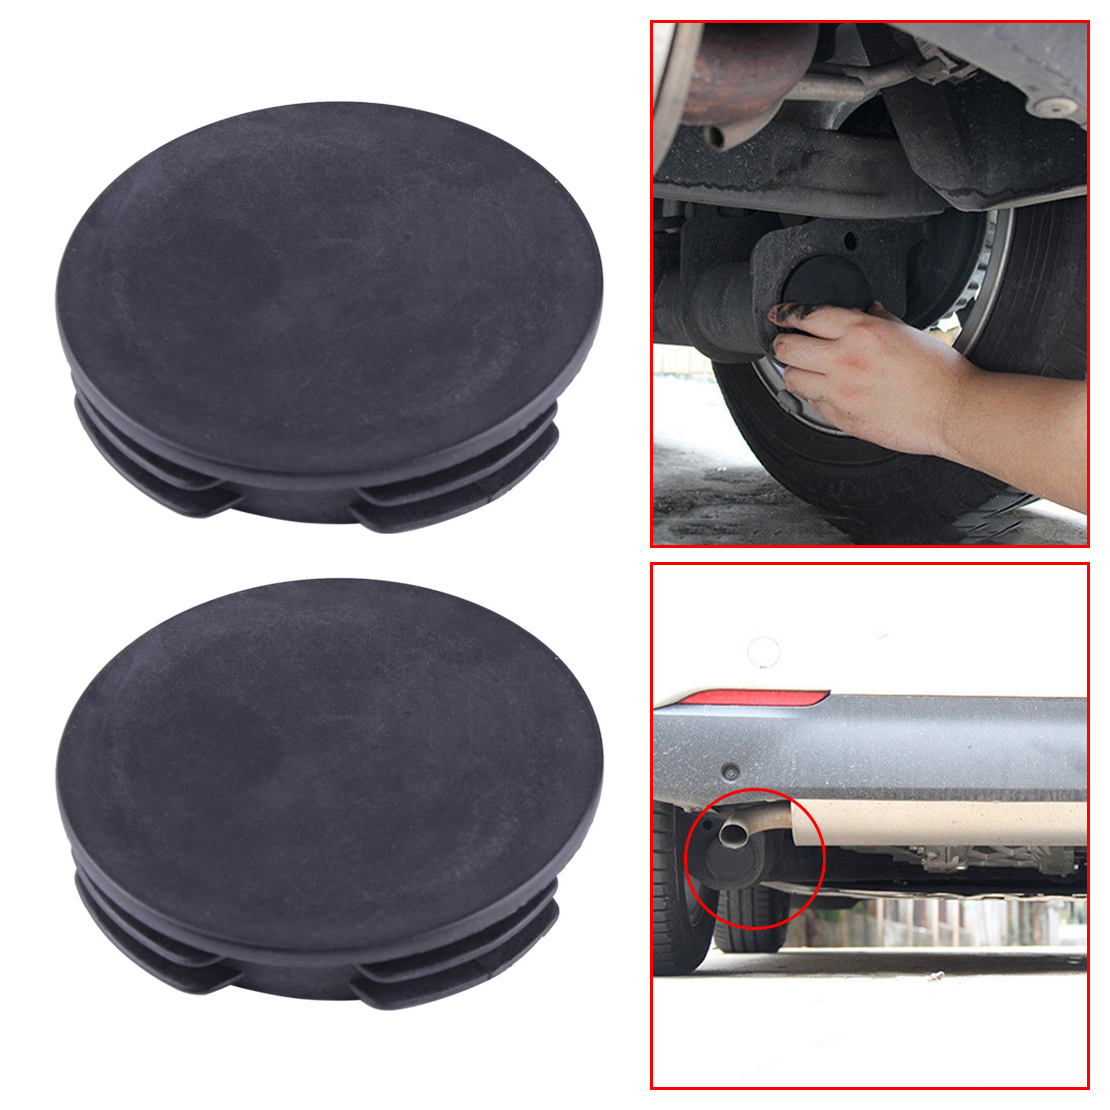 Exhaust Tail Pipe Tip Muffler Water Baffle Cover Protector Cap Specification Fit for Benz Smart Fortwo Forfour W451 2008-2014